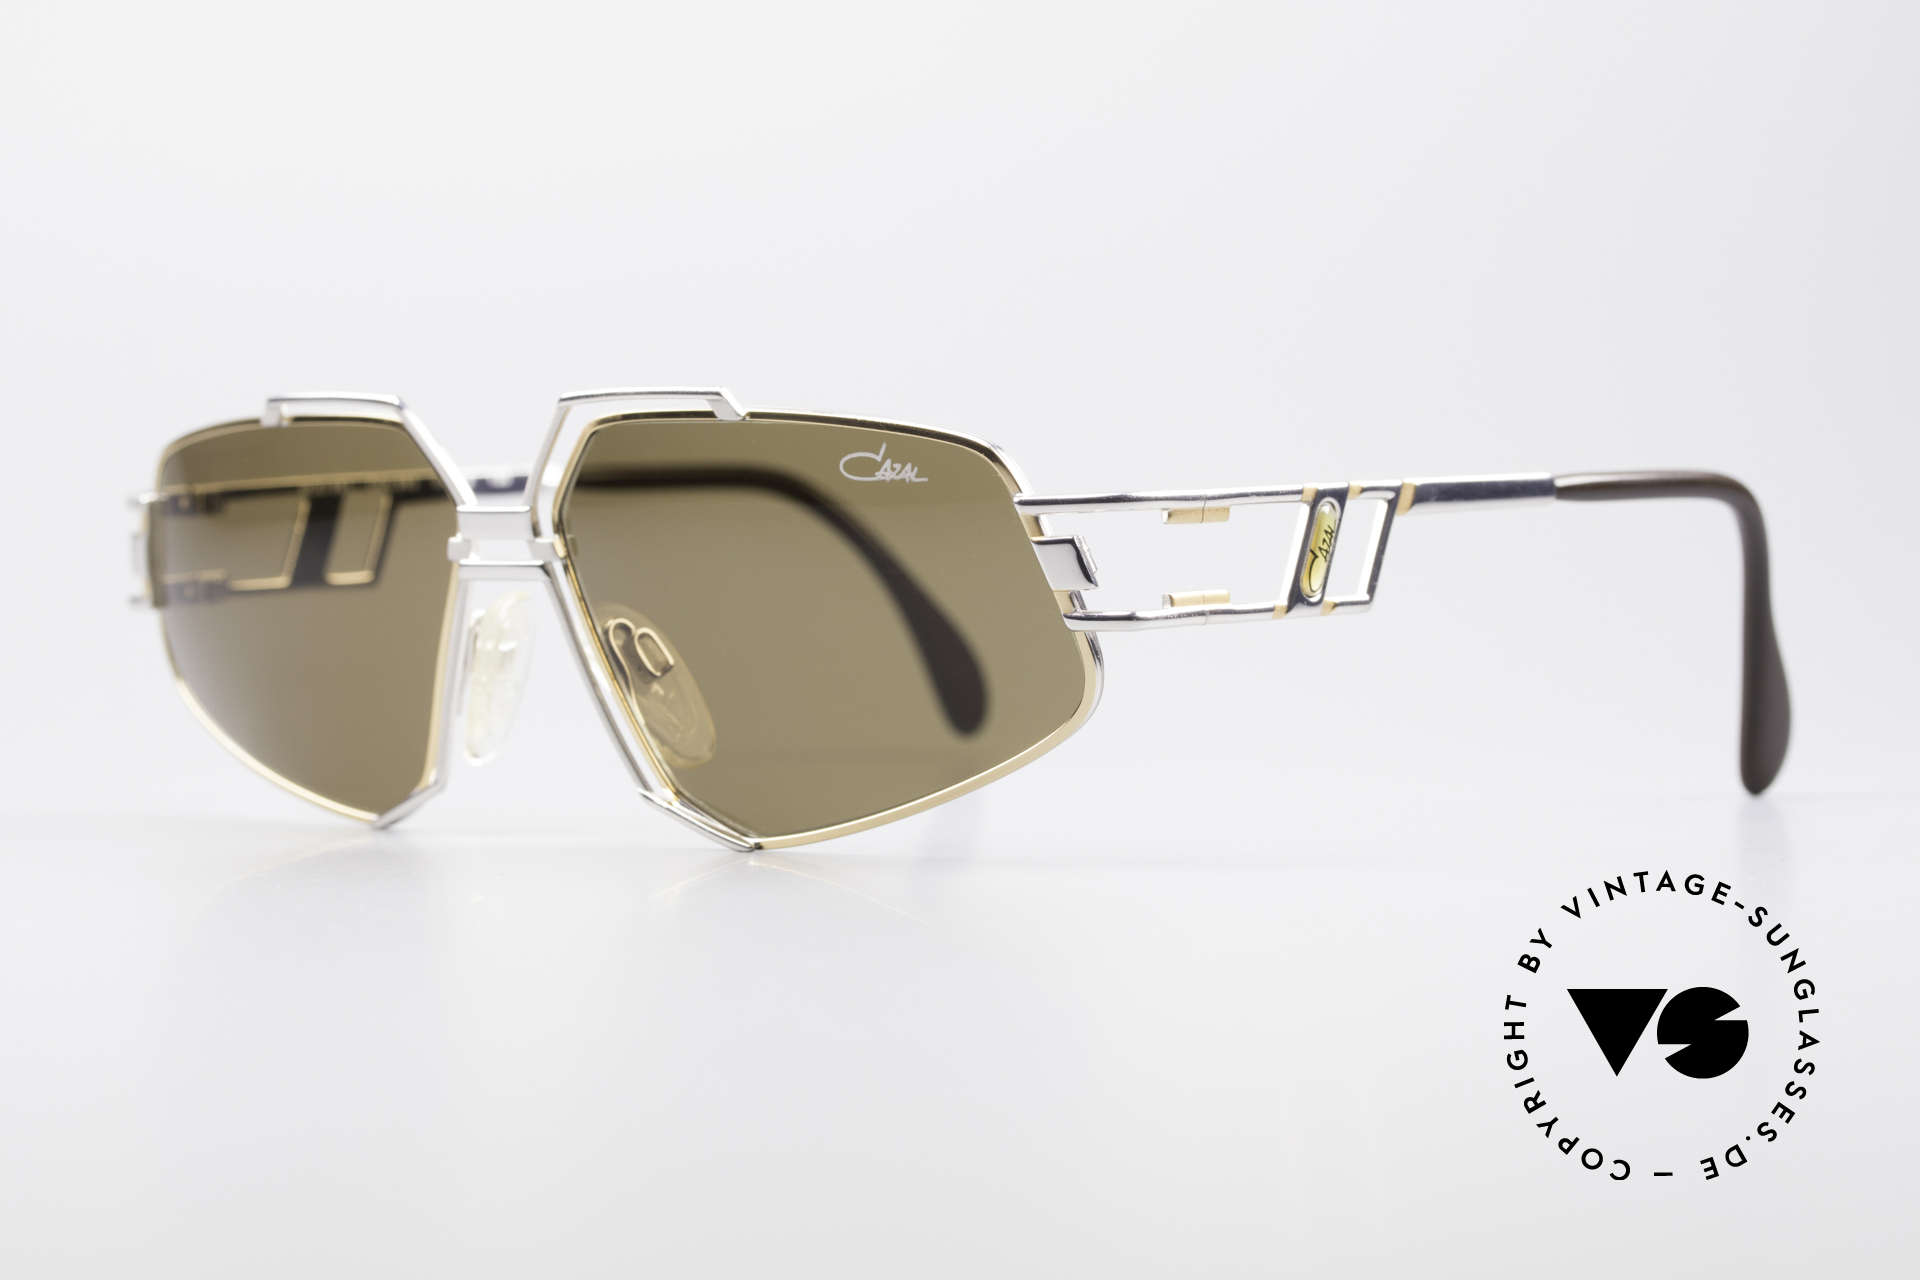 Cazal 961 Rare Designer Sunglasses 90s, striking & distinctive frame construction; truly vintage, Made for Men and Women